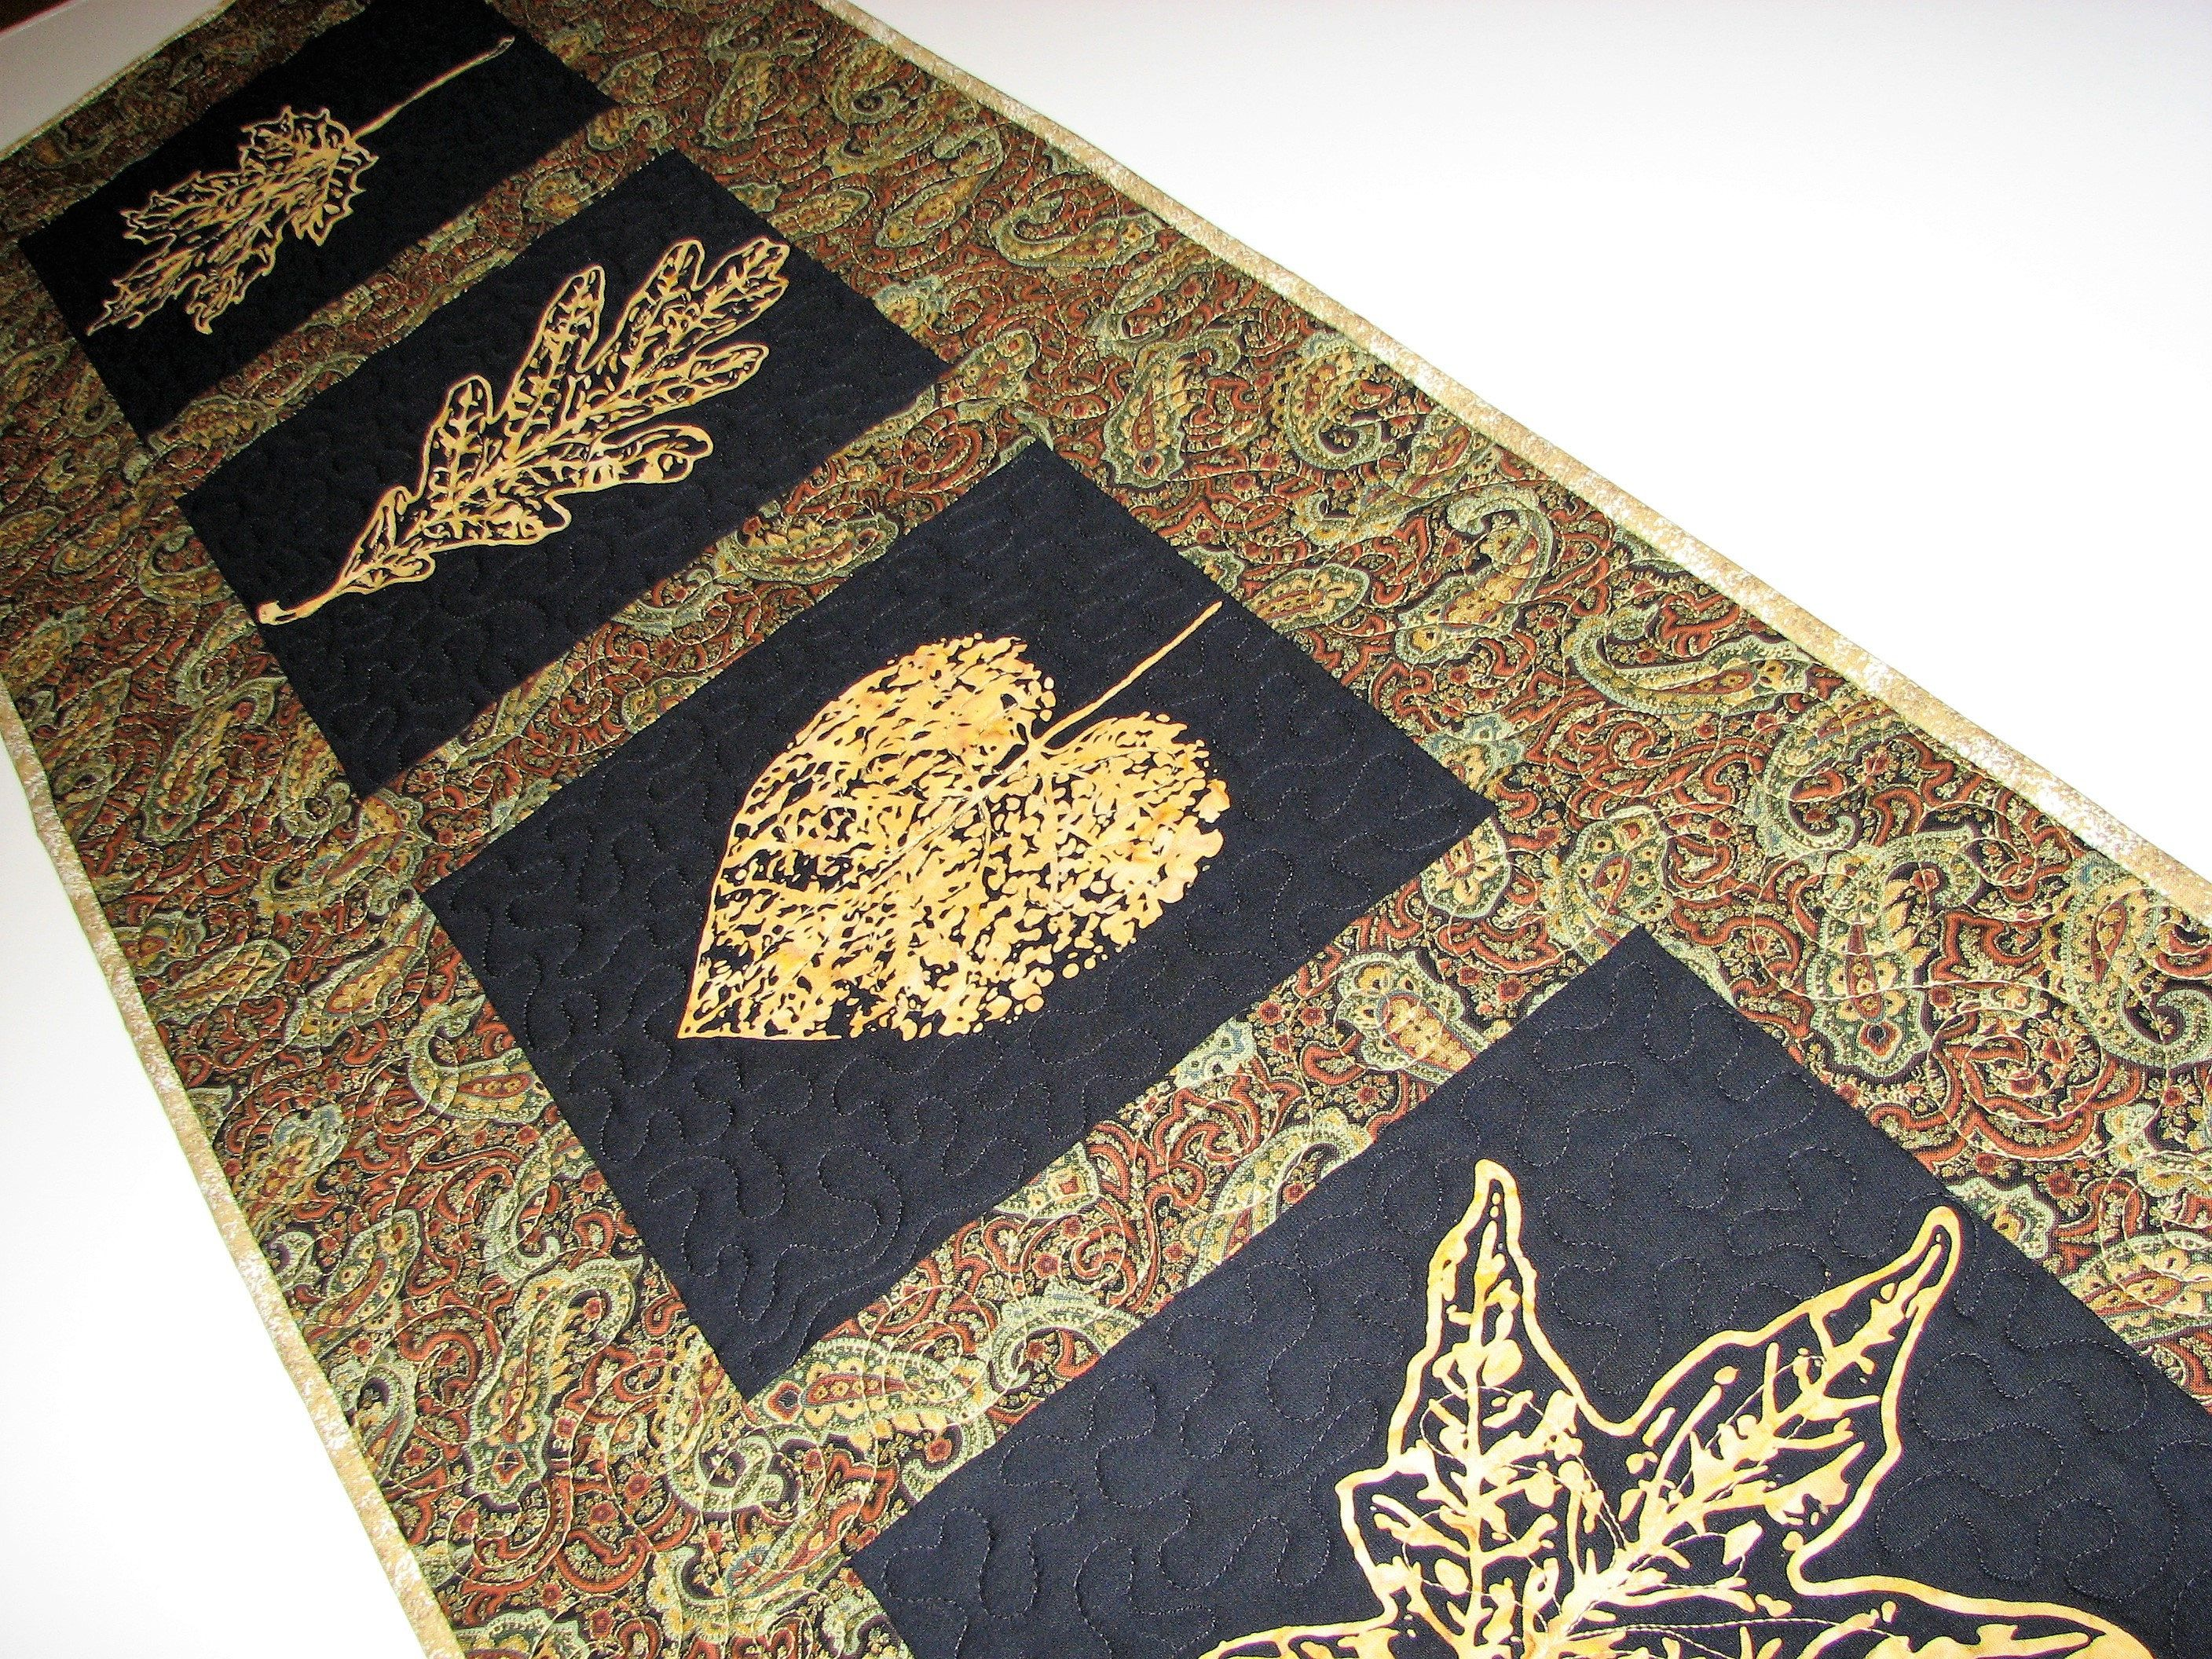 Autumn Quilted Table Runner, Black And Gold Leaf Quilted Table